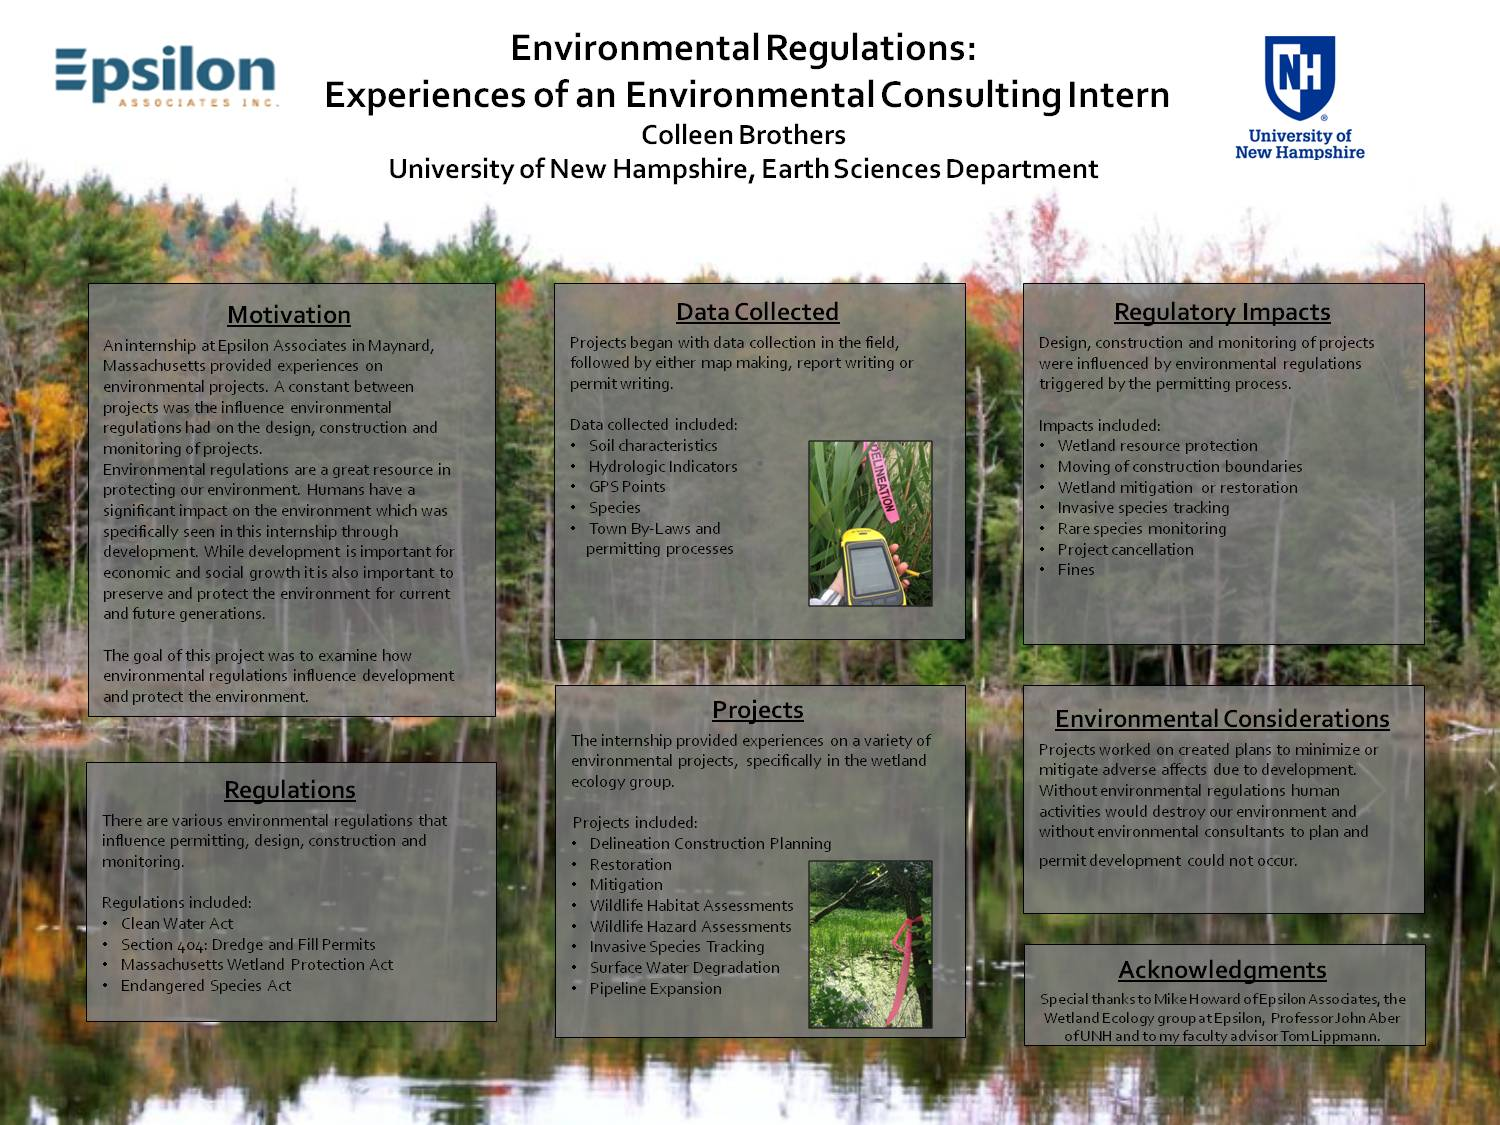 Environmental Regulations: Experiences Of An Environmental Consulting Intern  by cec92